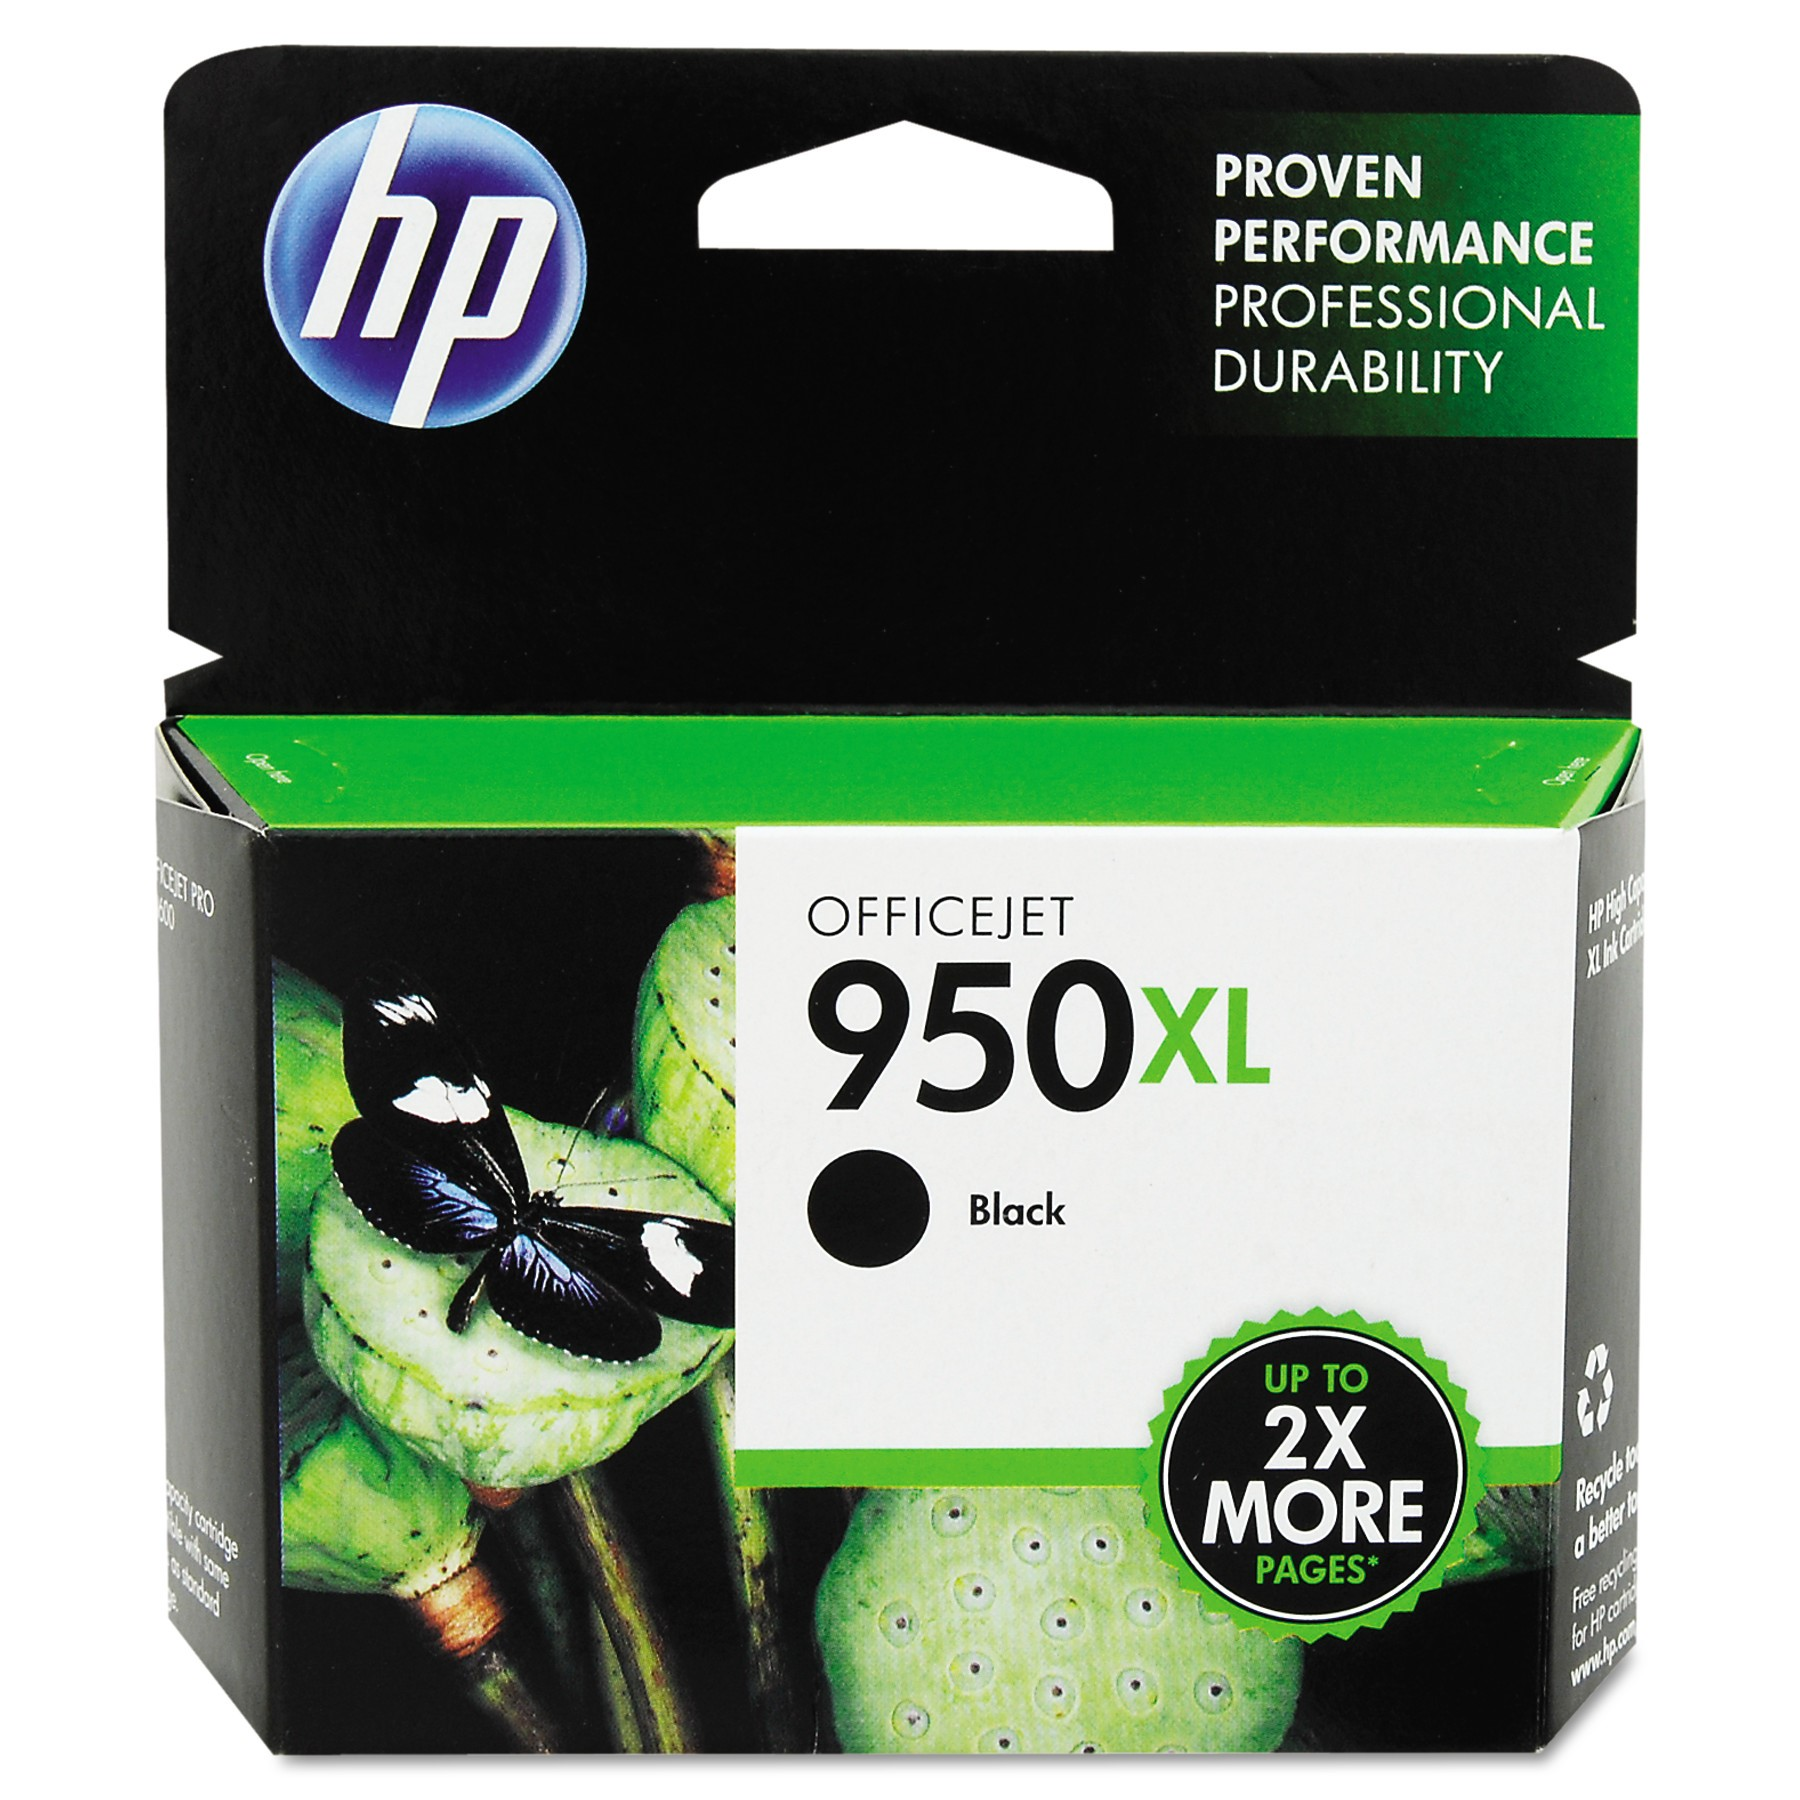 HP 950XL High Yield Black Original Ink Cartridge